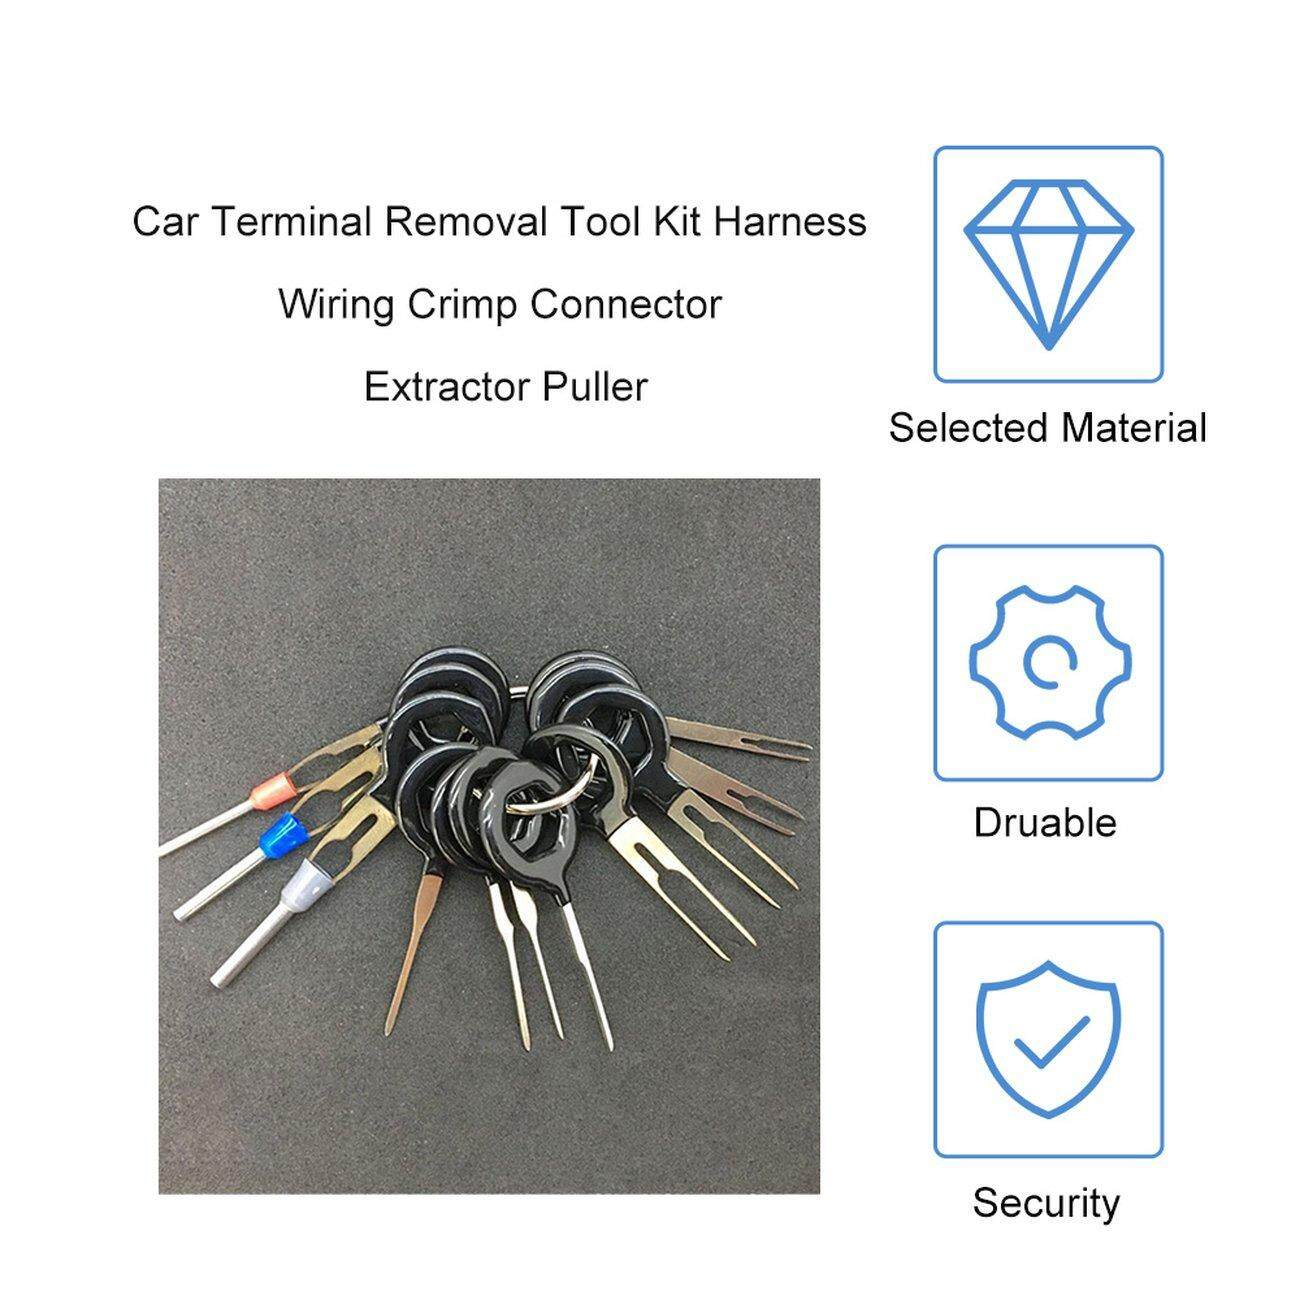 OSMAN Car Terminal Removal Tool Kit Harness Wiring Crimp Connector Extractor Puller